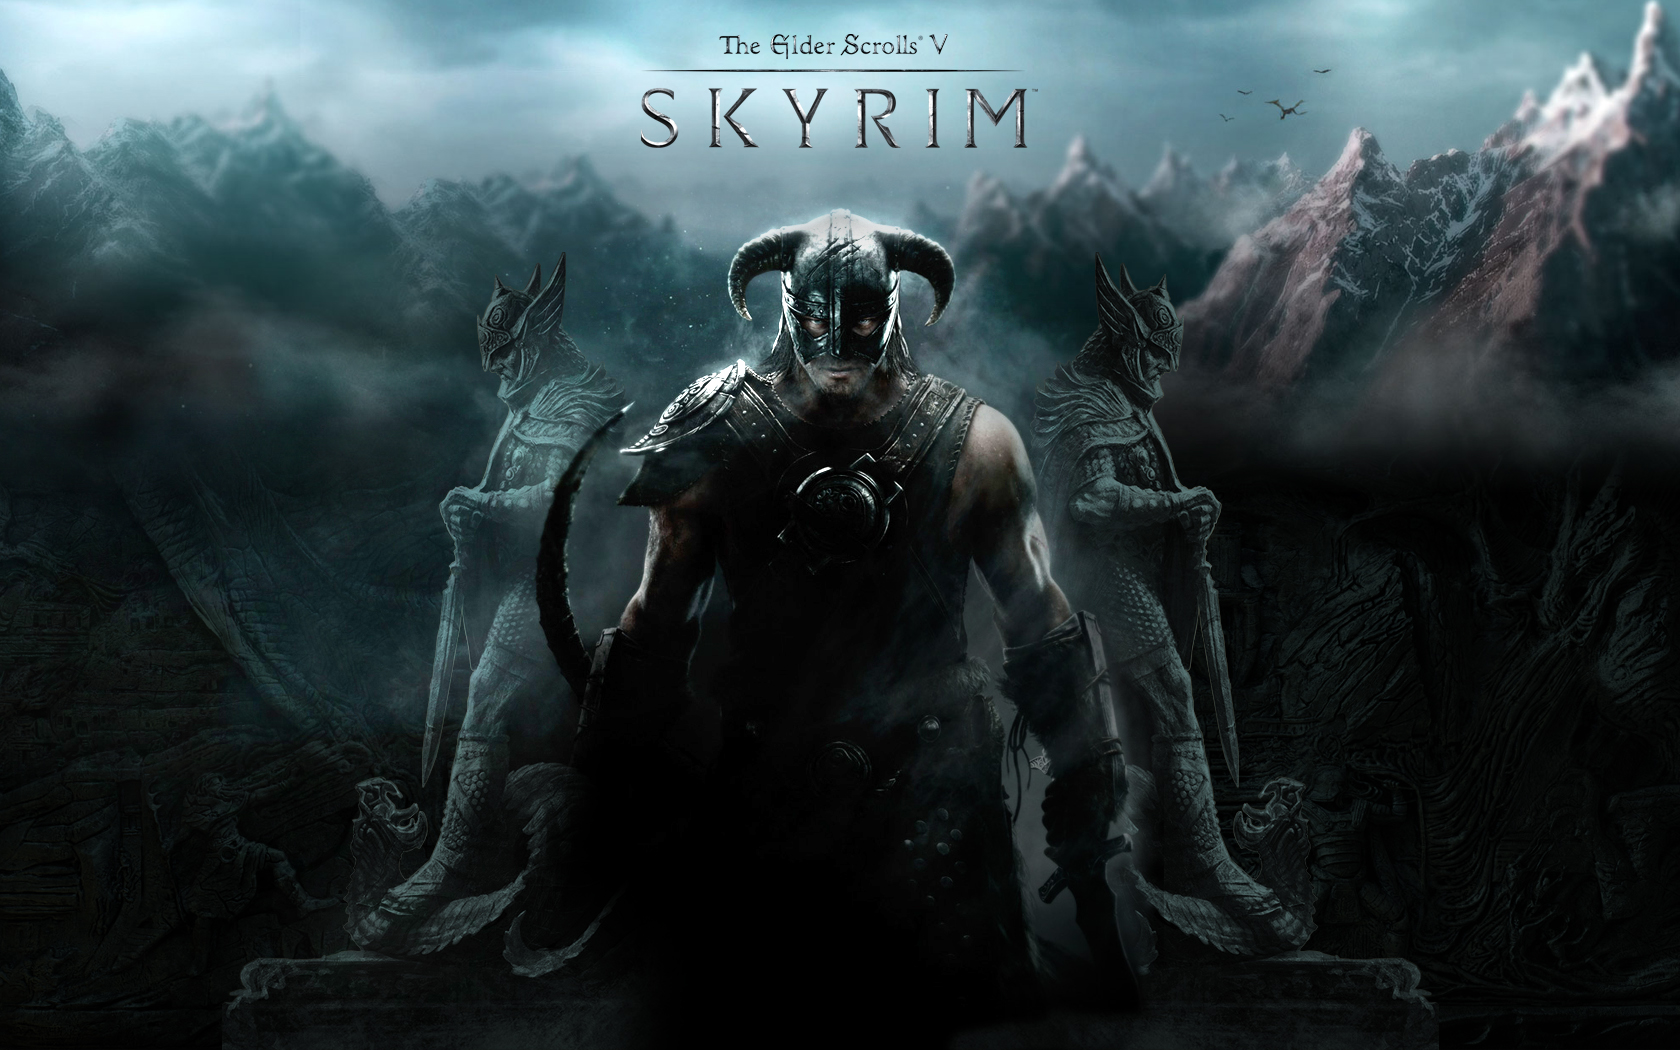 E3 2017: Skyrim is coming to PlayStation VR